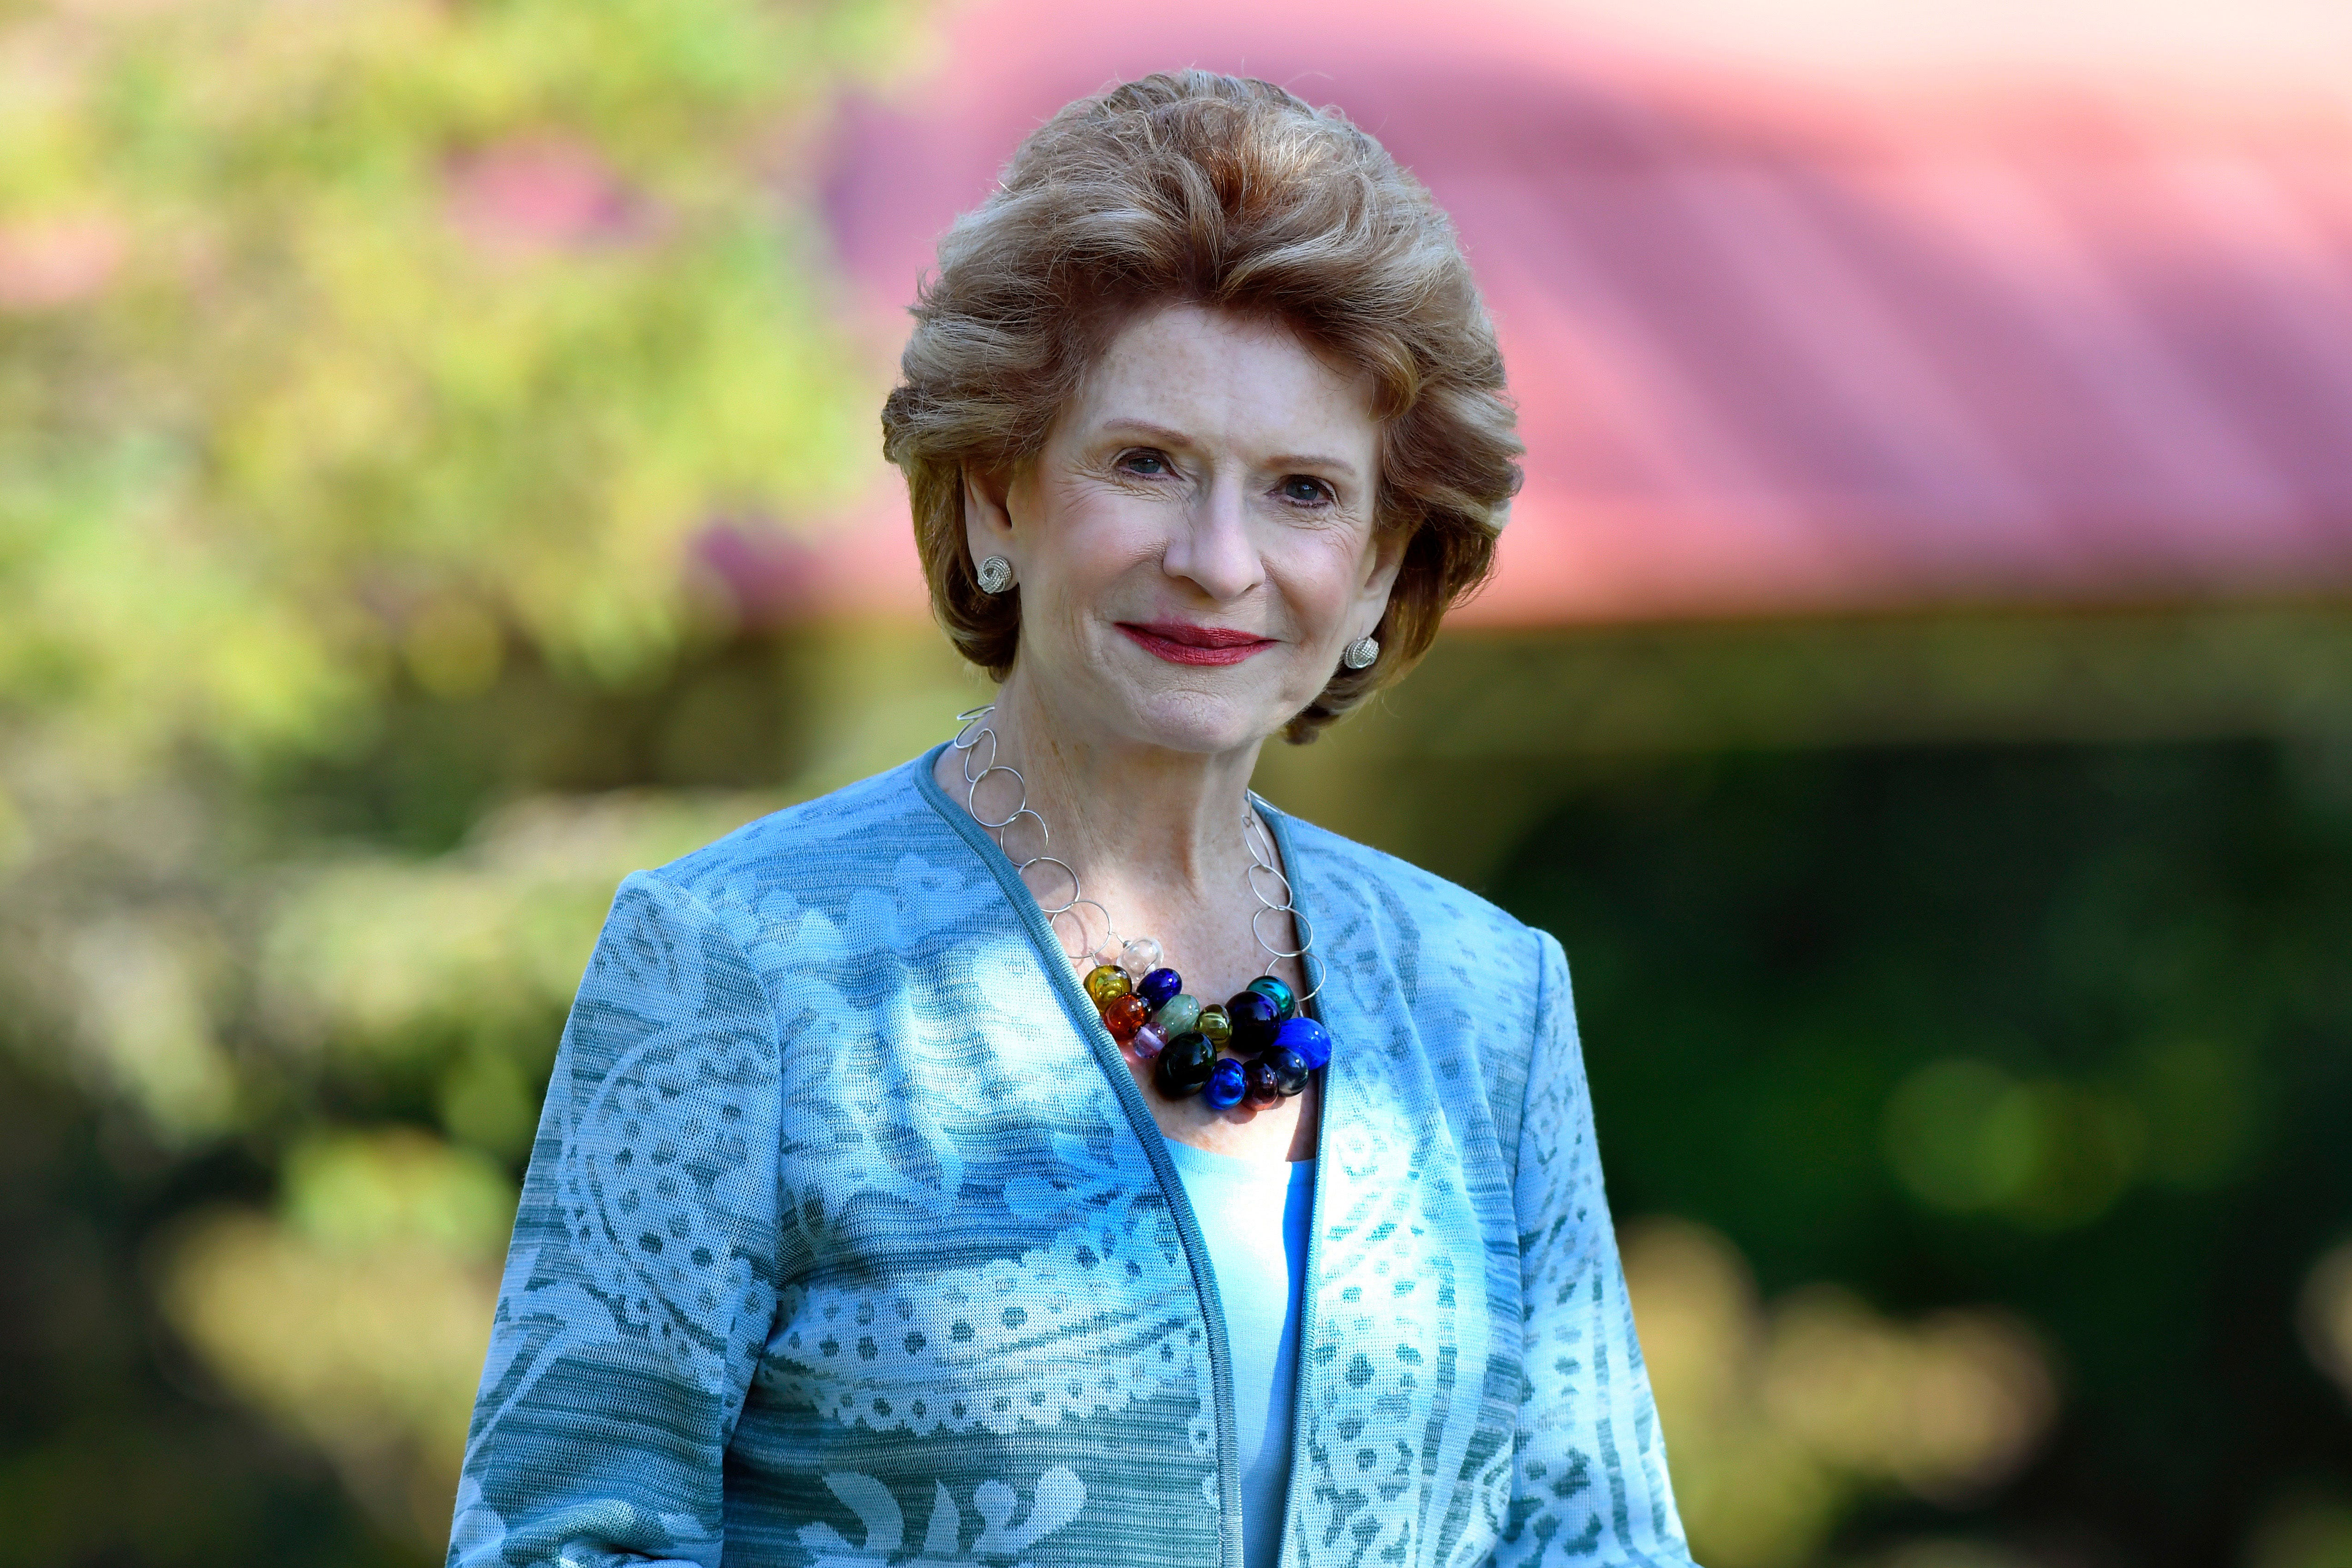 Father's illness drove Stabenow's work to improve mental health access, aid